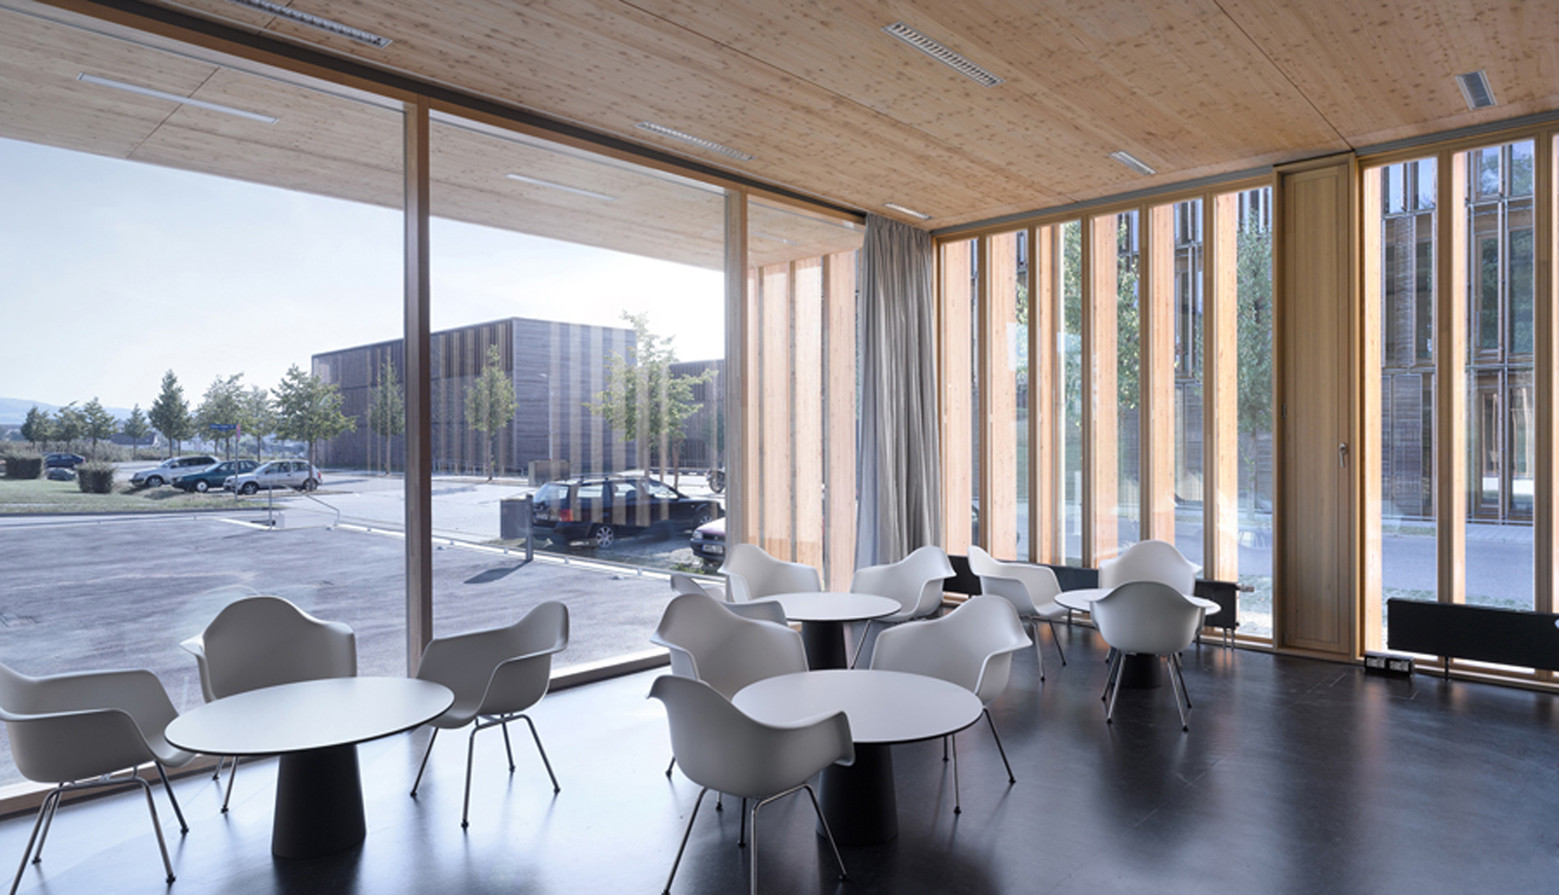 Cafeteria At The University Aalen Mgf Architekten